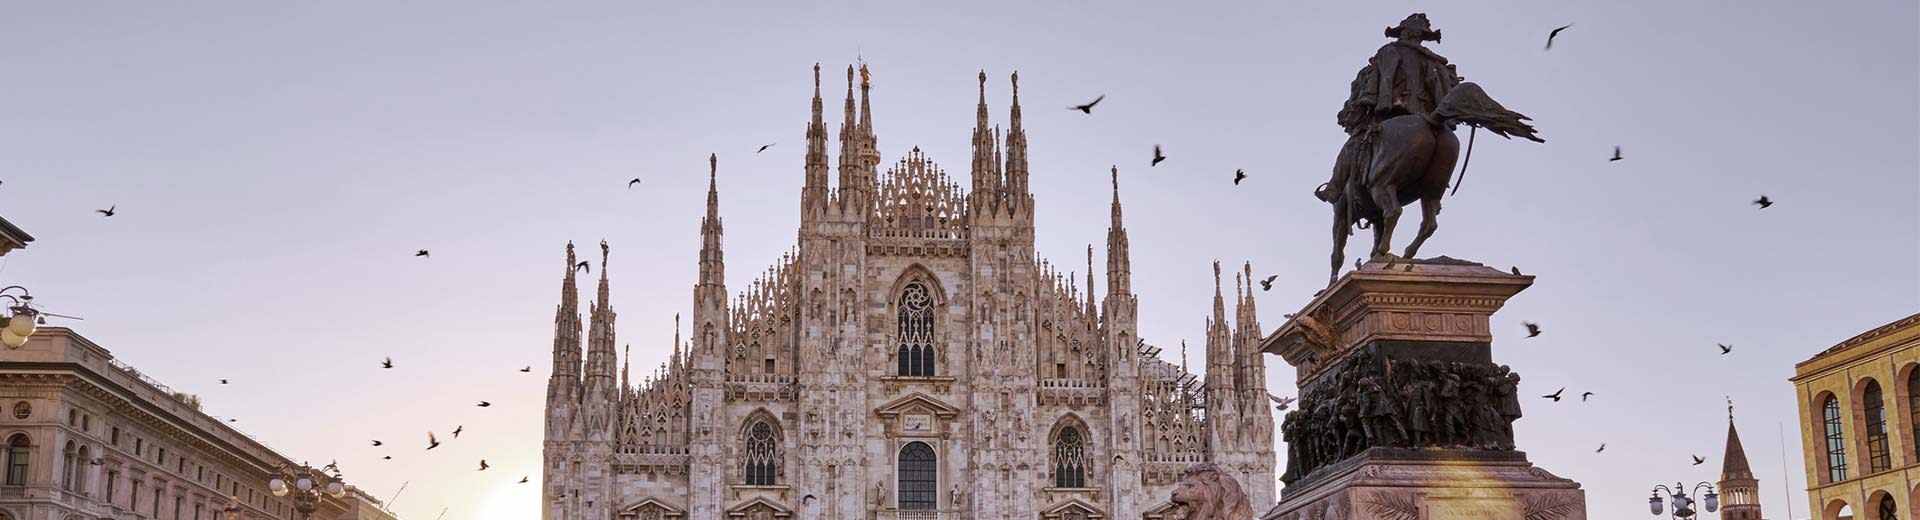 The beautiful cathedral of Milan, with the sun setting in the background